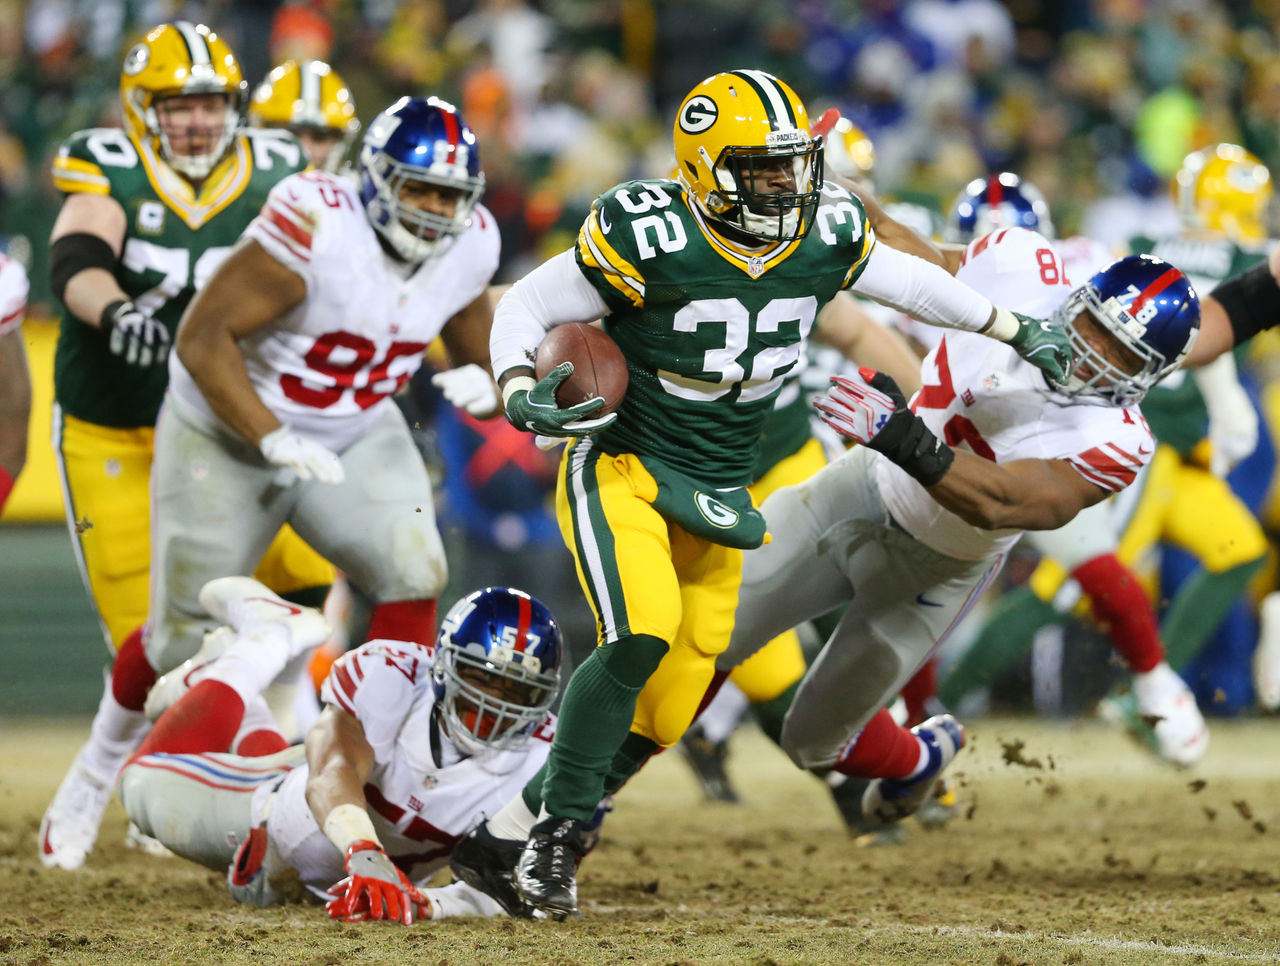 Cropped_2017-01-09t000929z_1420538488_nocid_rtrmadp_3_nfl-nfc-wild-card-new-york-giants-at-green-bay-packers